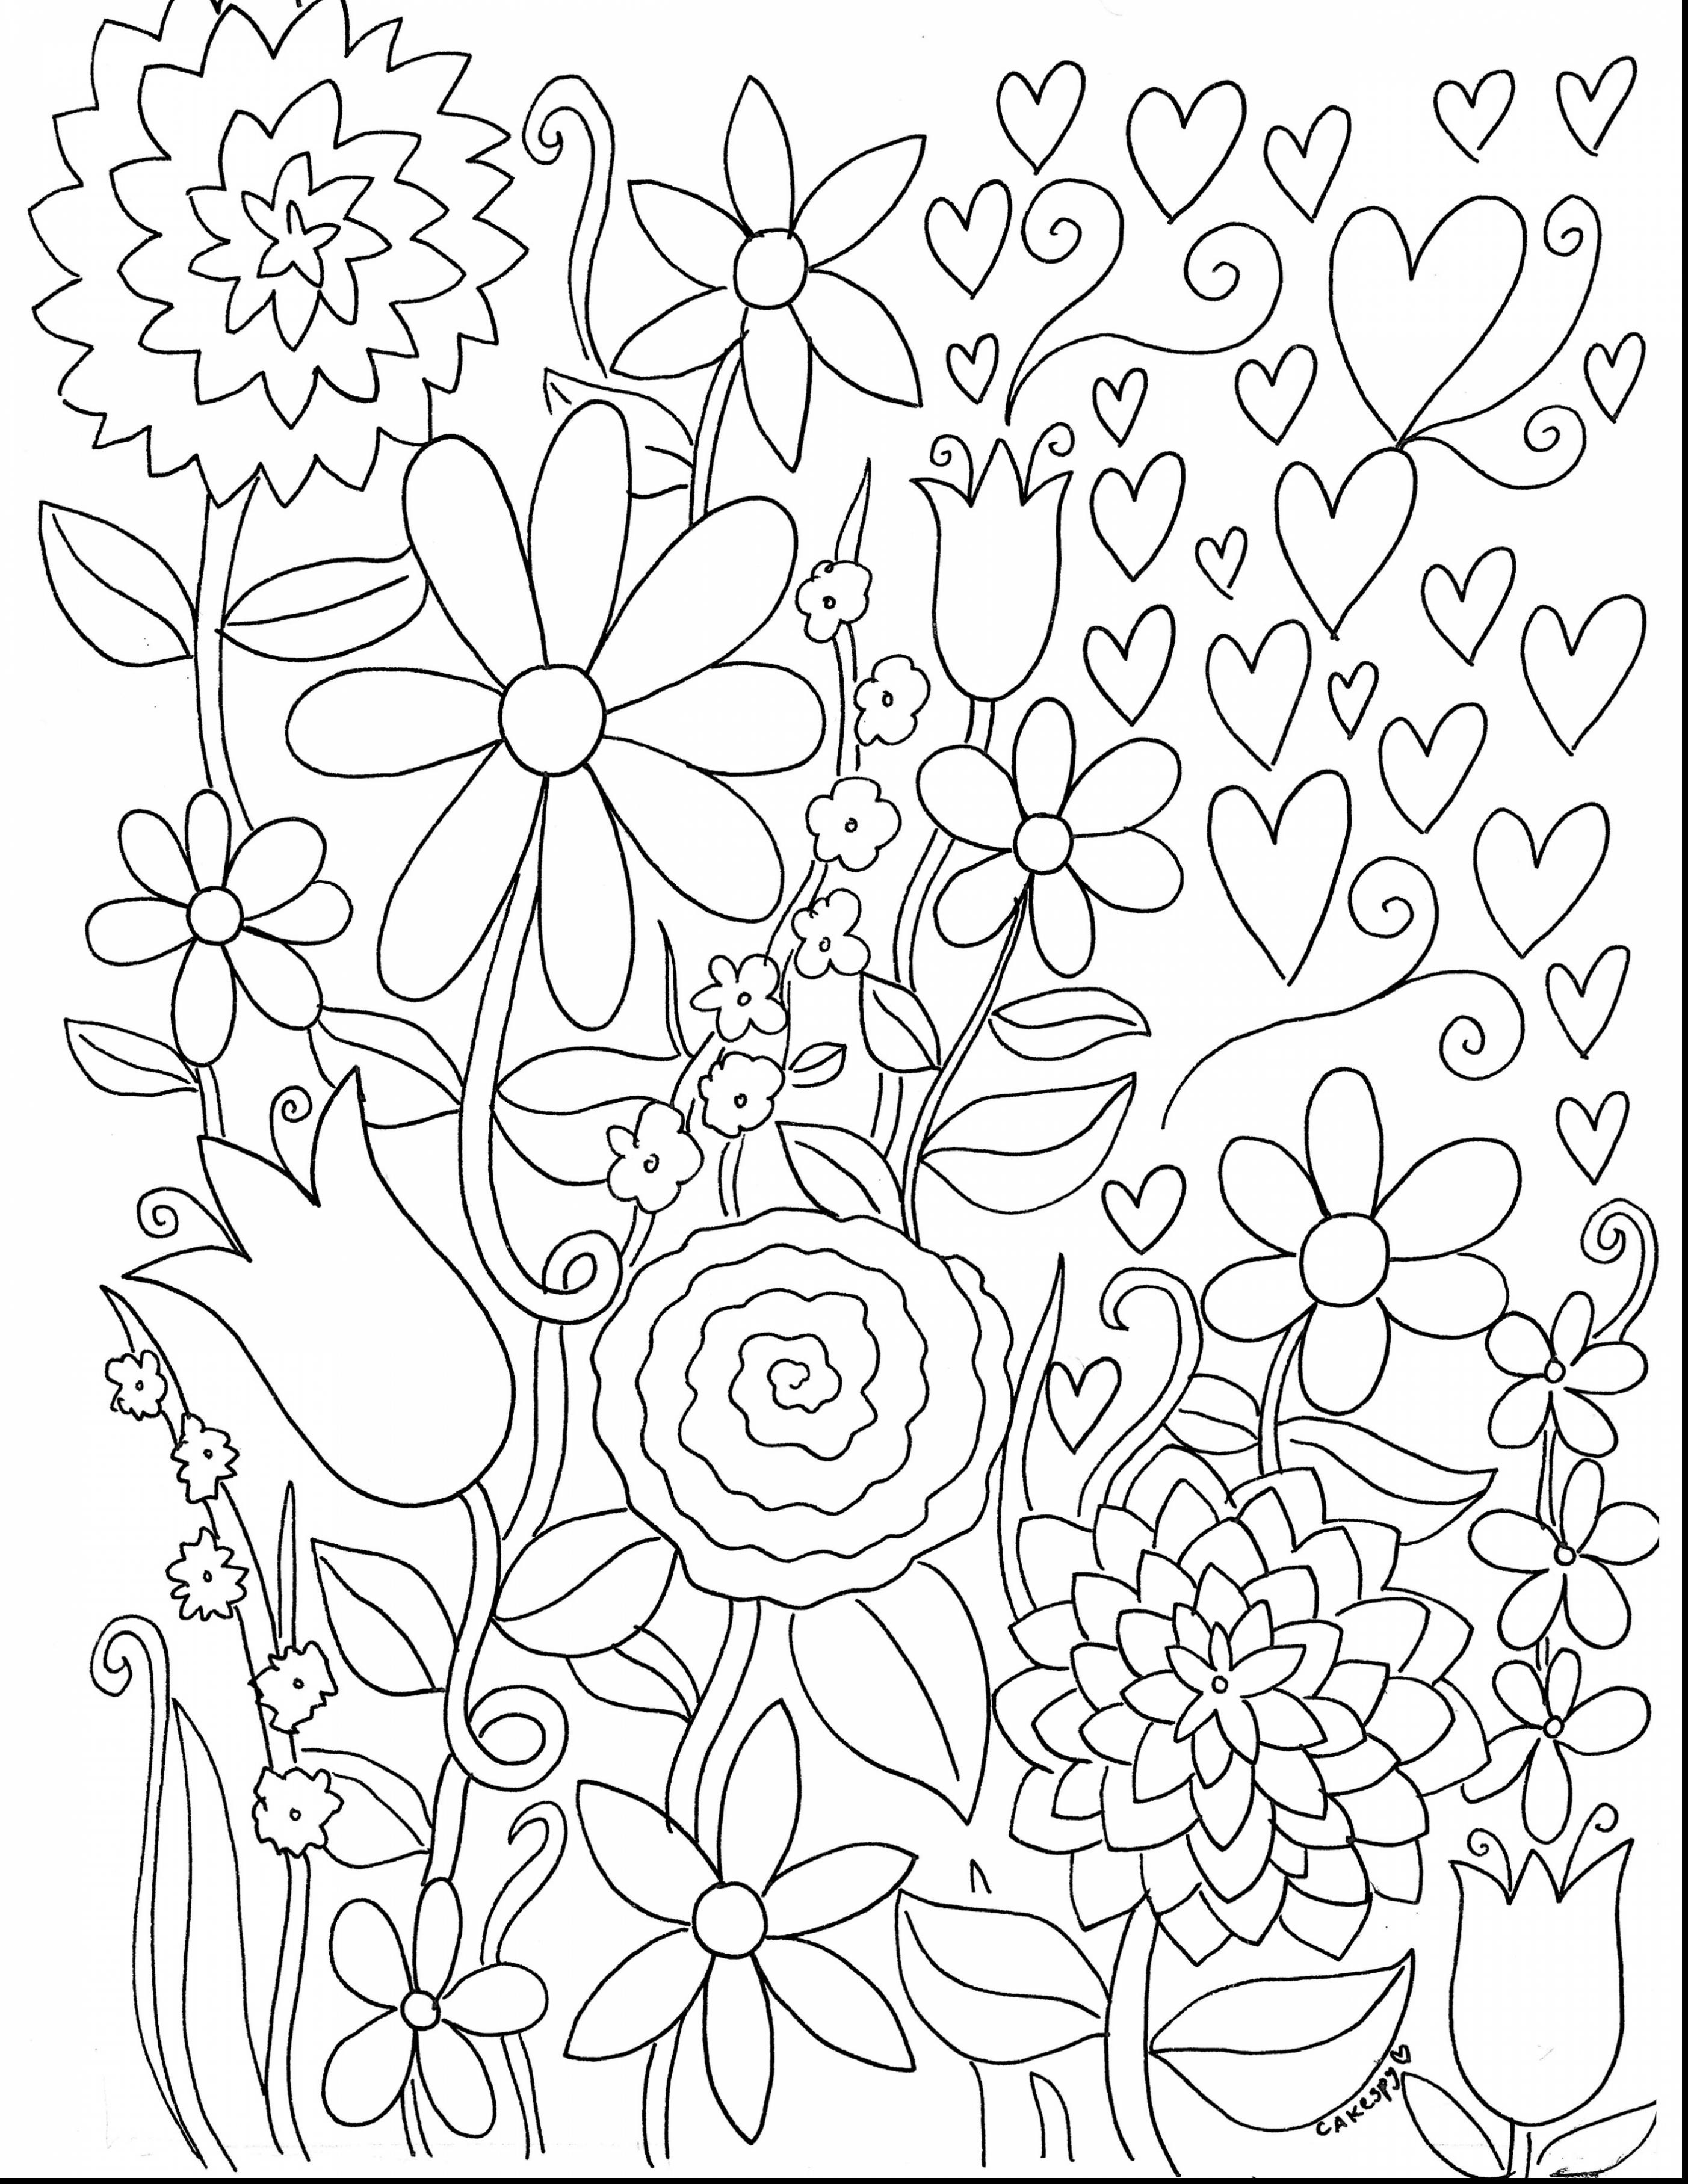 2805x3630 Make Your Own Coloring Pages Free Book Arilitv Com Picturesque Acpra